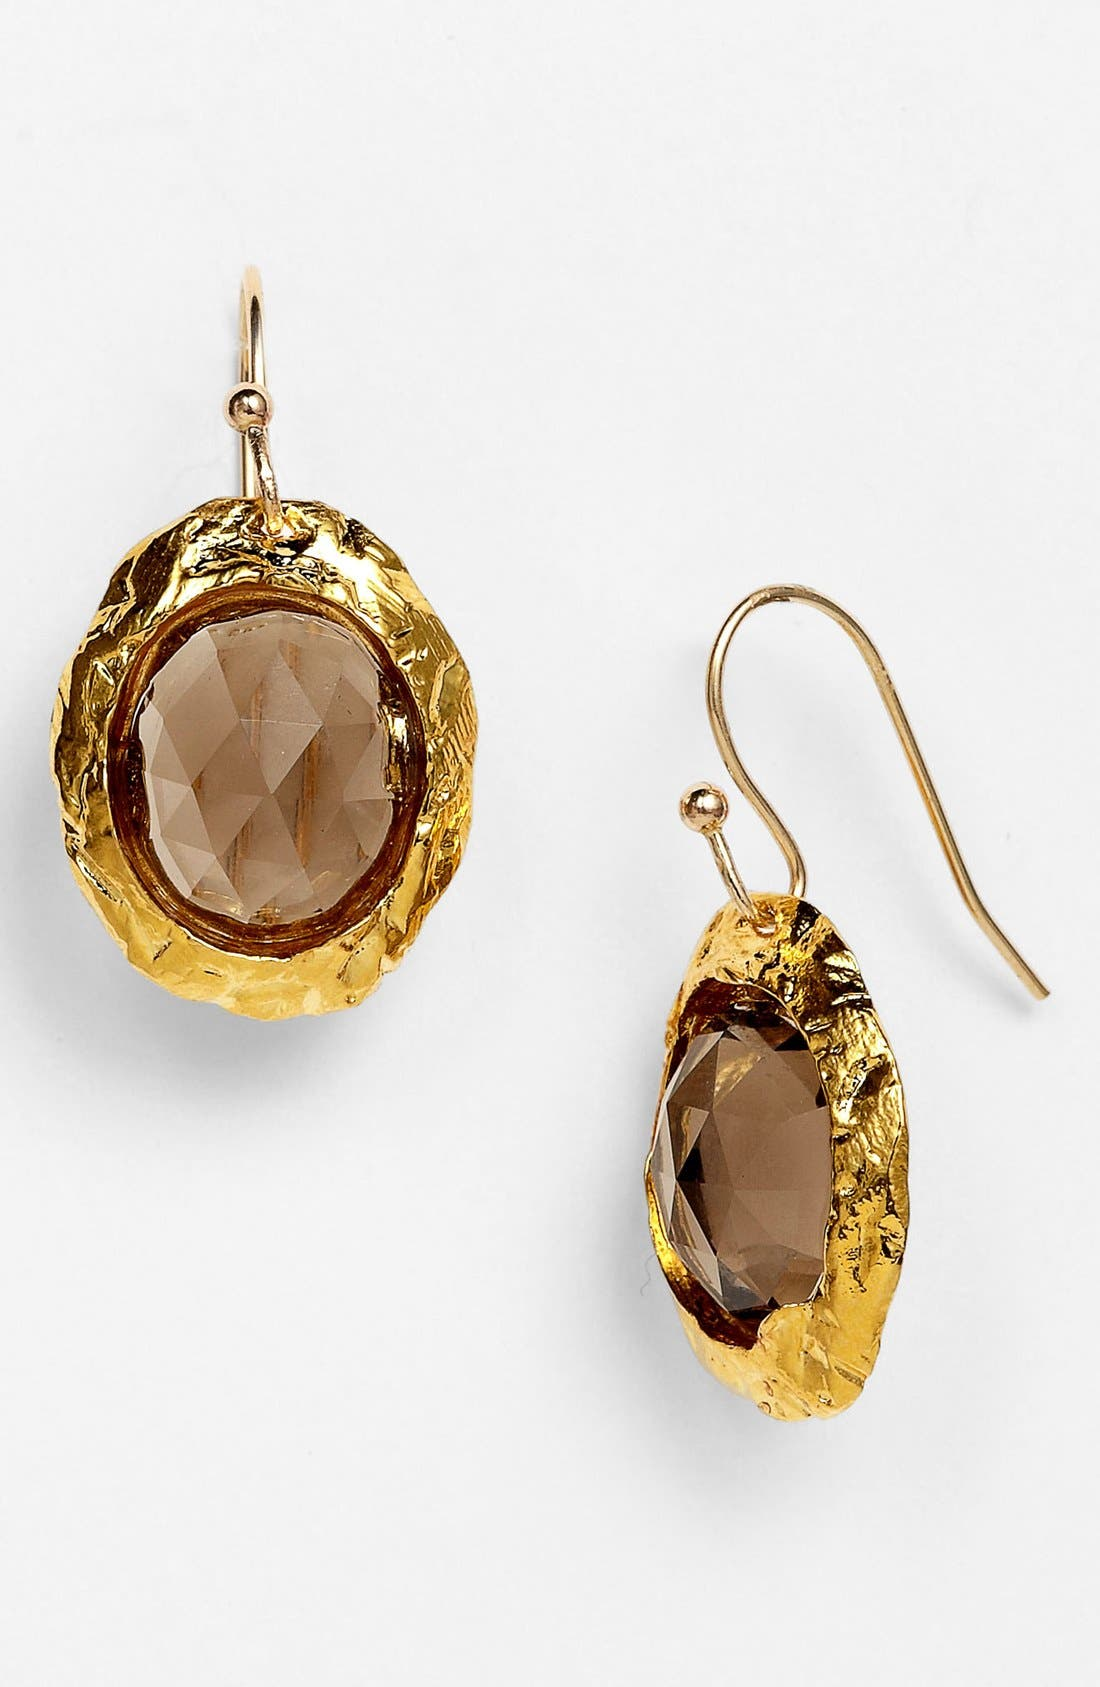 Alternate Image 1 Selected - Alexis Bittar 'Elements' Oval Bezel Drop Earrings (Nordstrom Exclusive)